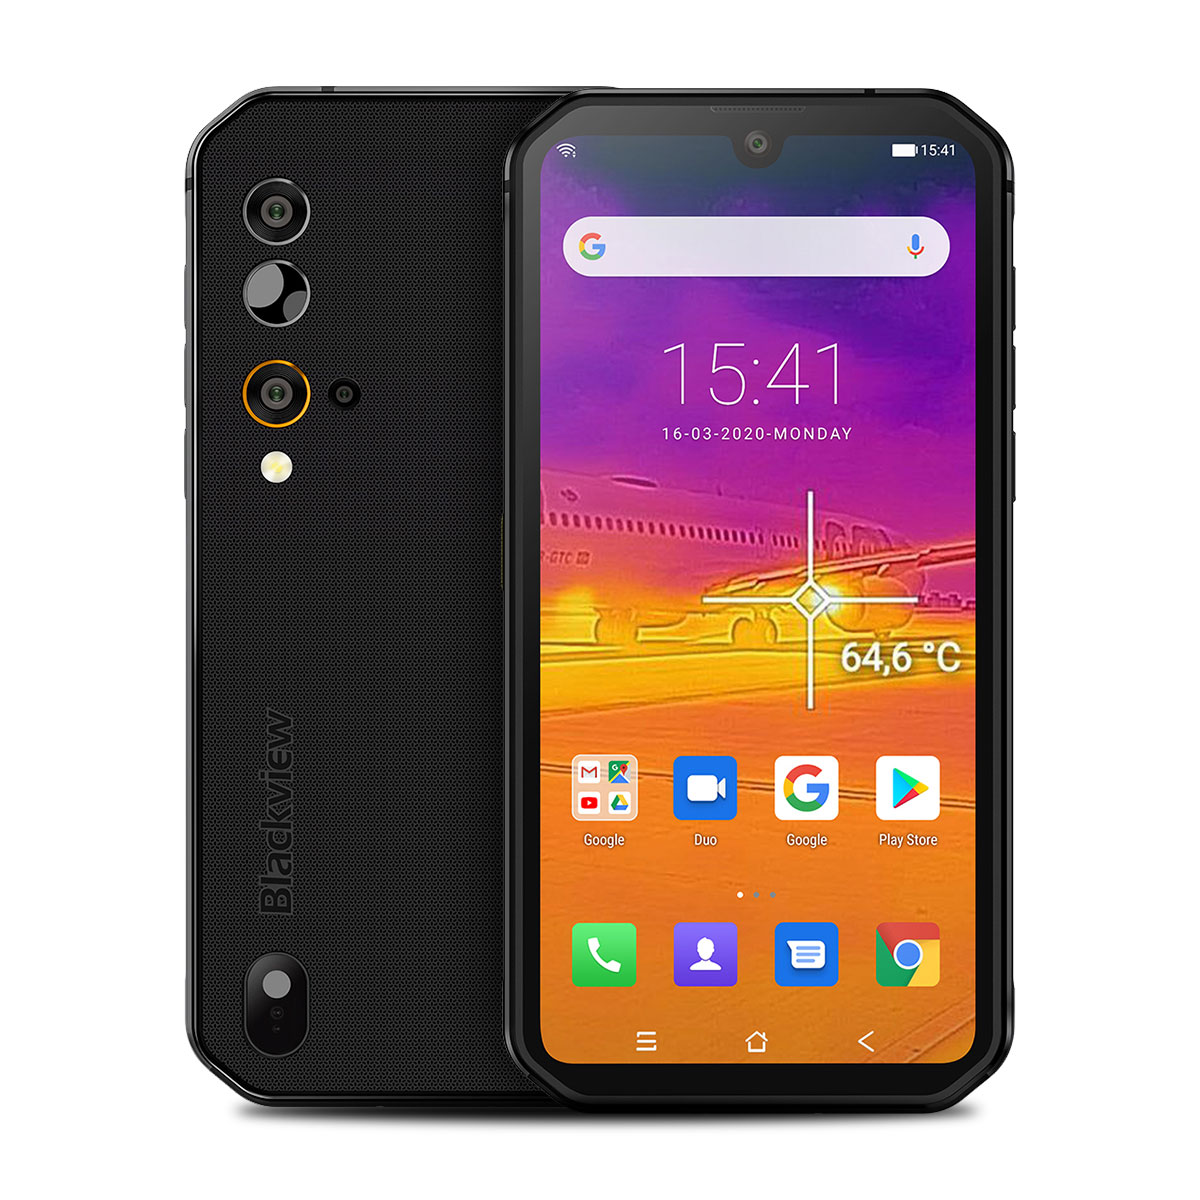 Blackview BV9900 Pro Thermal Camera Mobile Phone Helio P90 Octa Core 8GB+128GB IP68 Rugged Smartphone 48MP Quad Rear Camera black_Non-European regulations